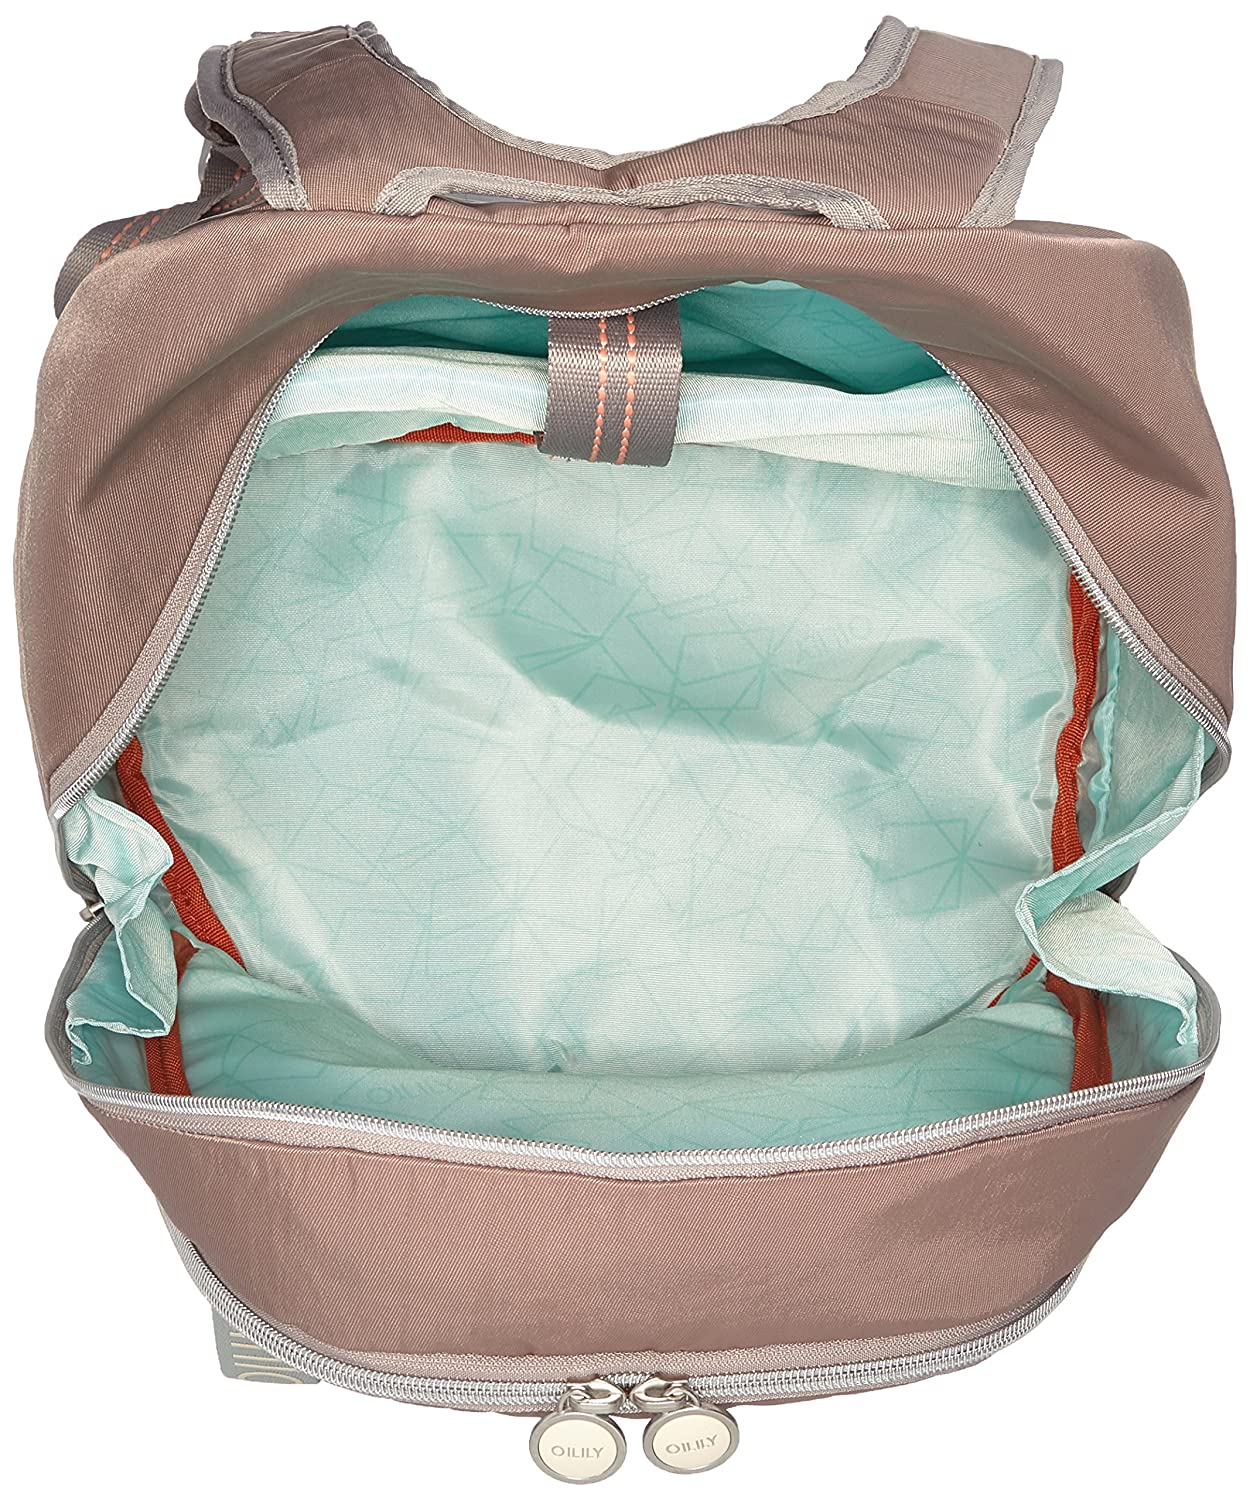 Oilily - Fun Nylon Backpack Lvz, Bolsos mochila Mujer, Beige (Taupe), 21x40x30 cm (B x H T): Amazon.es: Zapatos y complementos